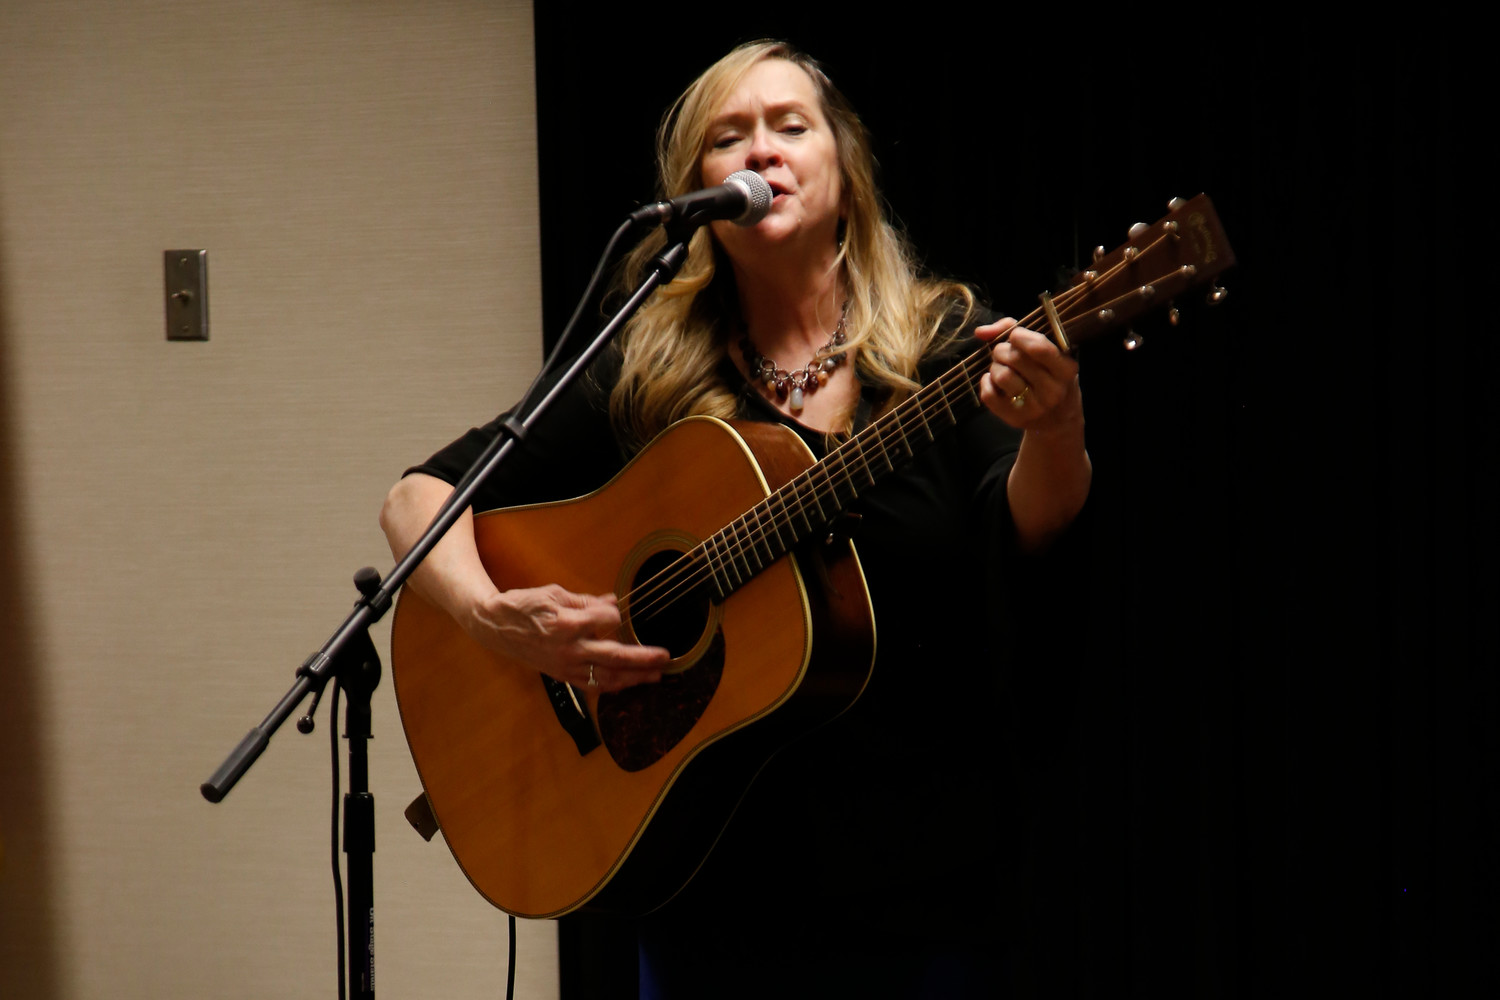 Kathy DeVine, of Buddy Merriam & Back Roads, played the guitar during a performance at the East Meadow Public Library.